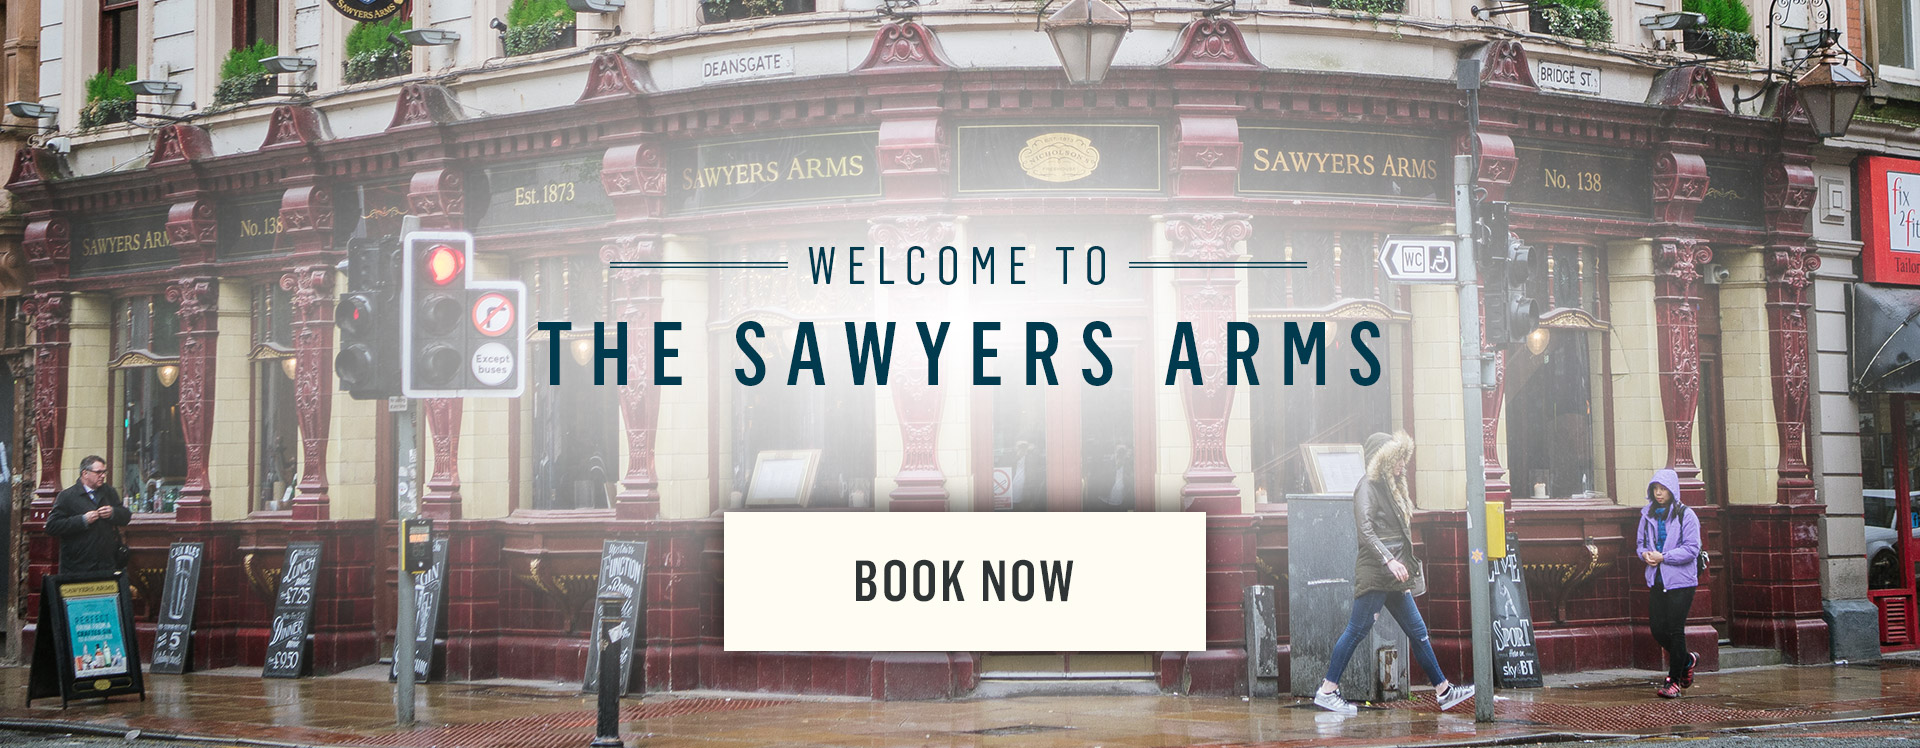 Welcome to The Sawyer's Arms - Book Now